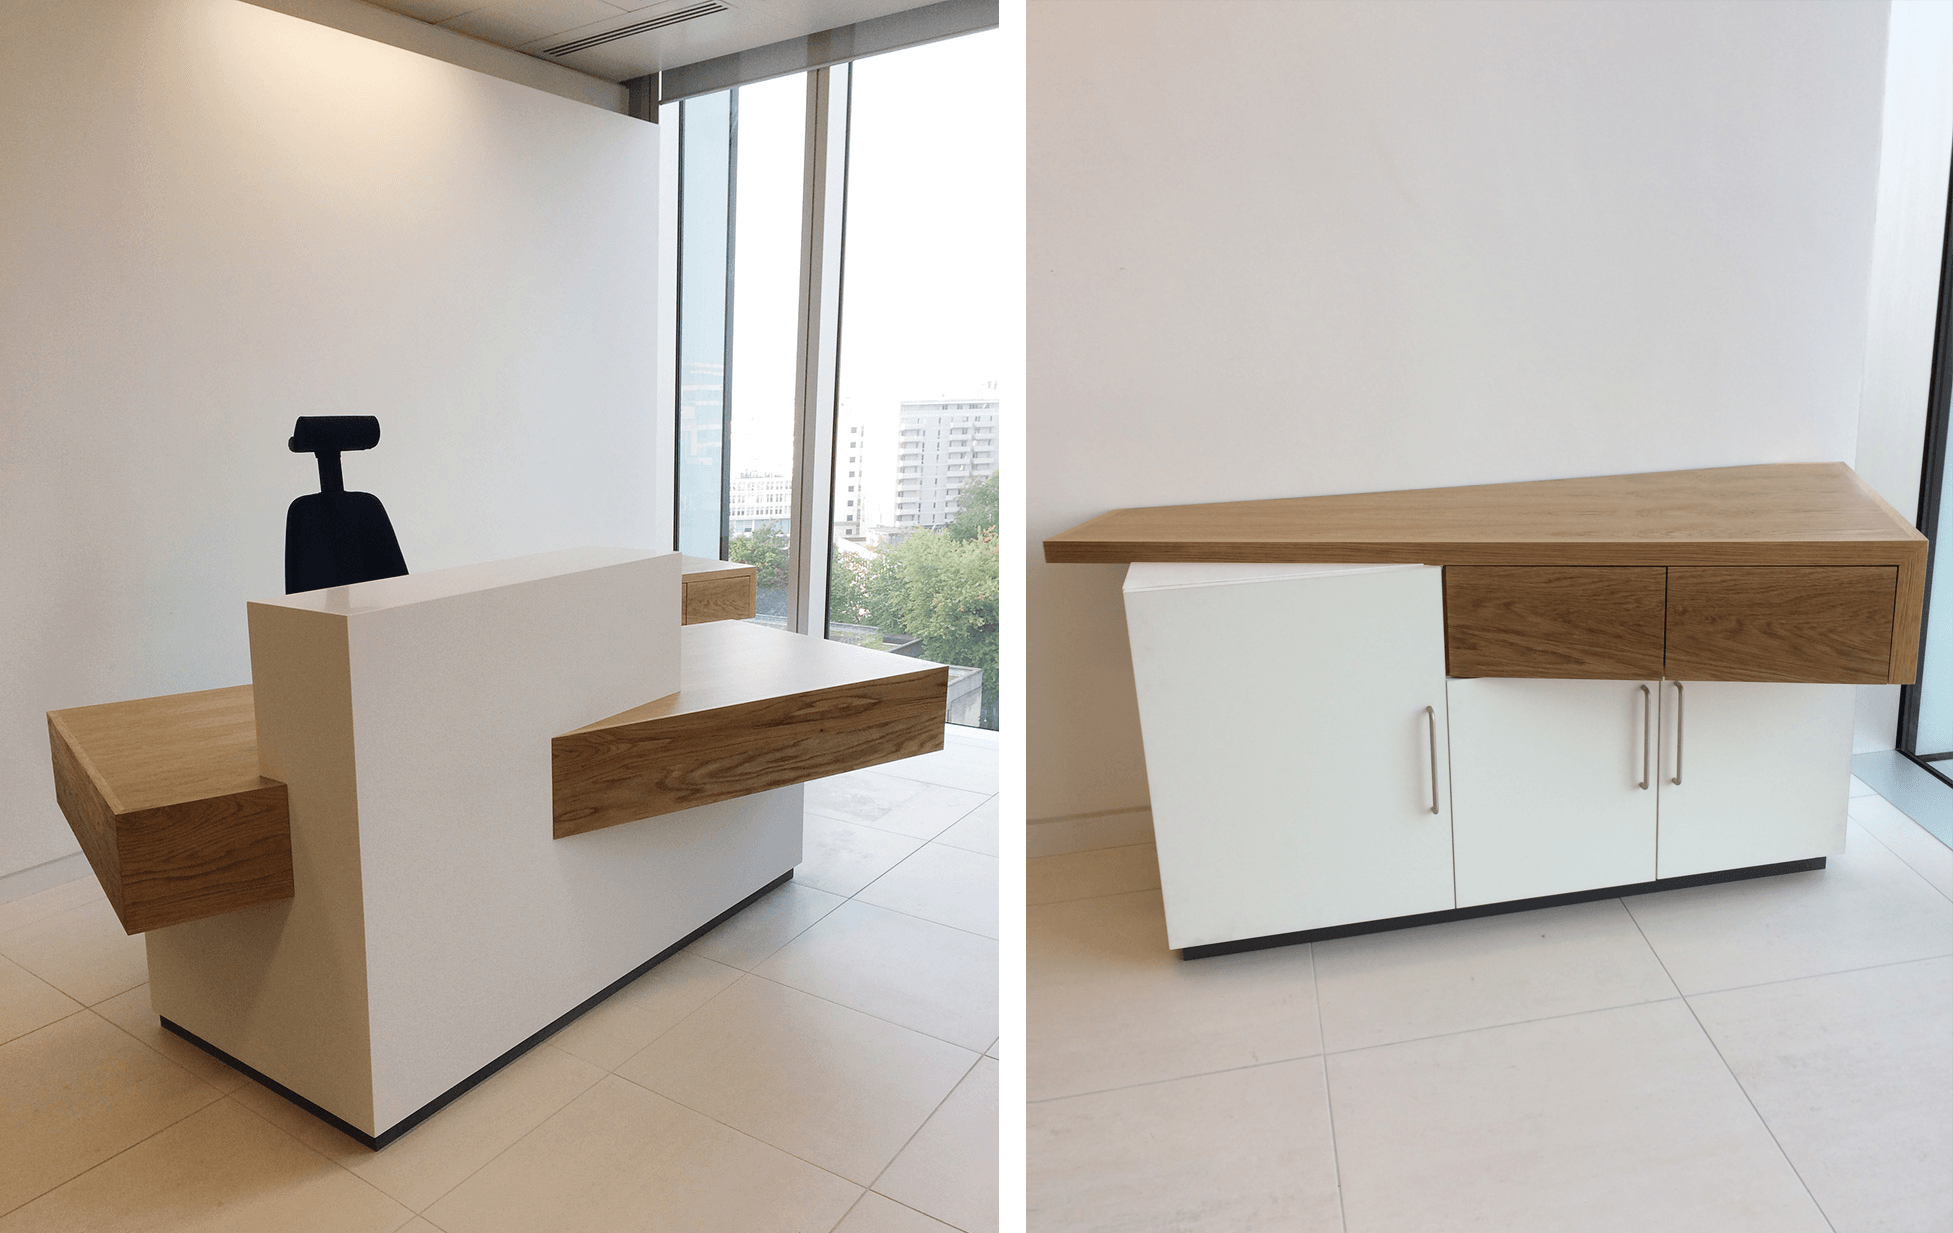 We Installed This Second Custom Reception Desk Design For Lambert Smith  Hampton In Their Manchester Offices Last Week. This Angled Design Always  Gets People ...